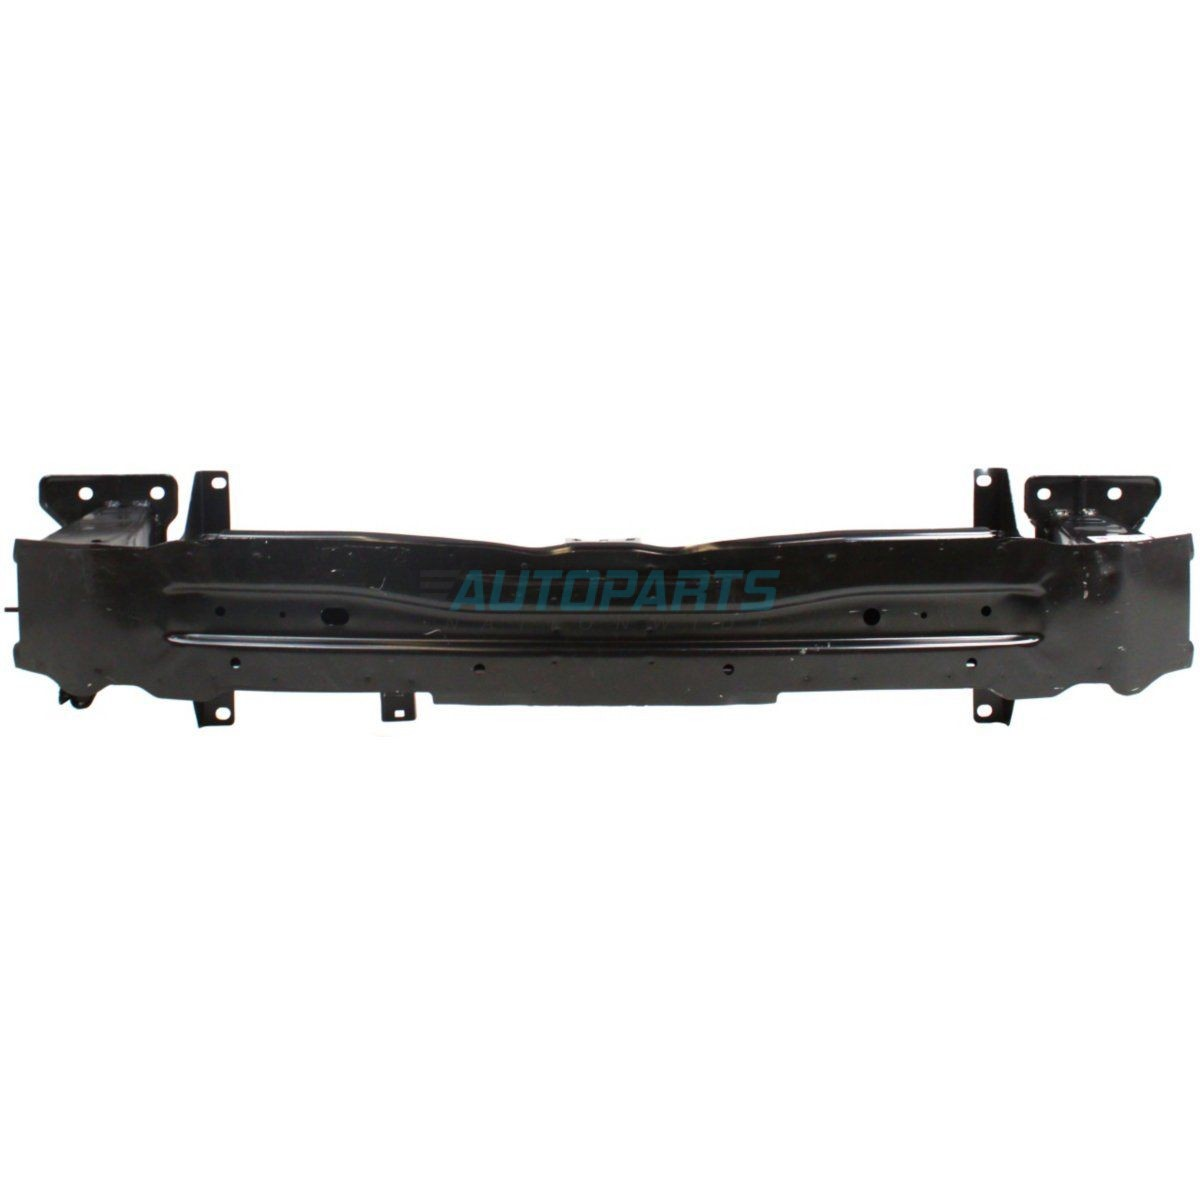 NEW FRONT BUMPER REINFORCEMENT FOR 2009-2013 MAZDA 6 MA1006148